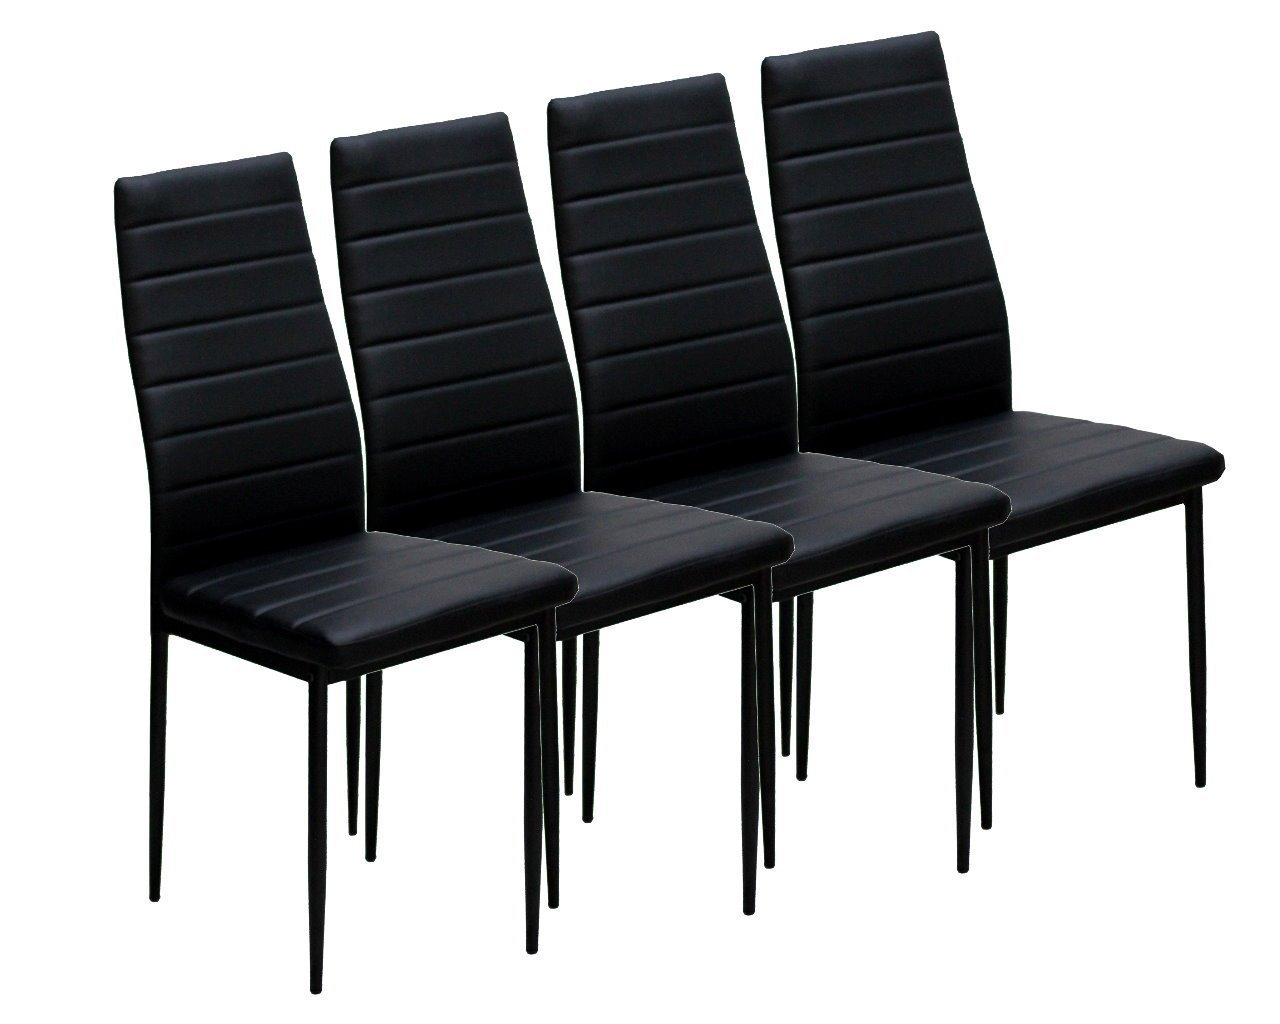 Azadx Elegant Rectangular Casual Simple Assembled Dining Table and Set of 4 Chairs Black (4 Chairs)